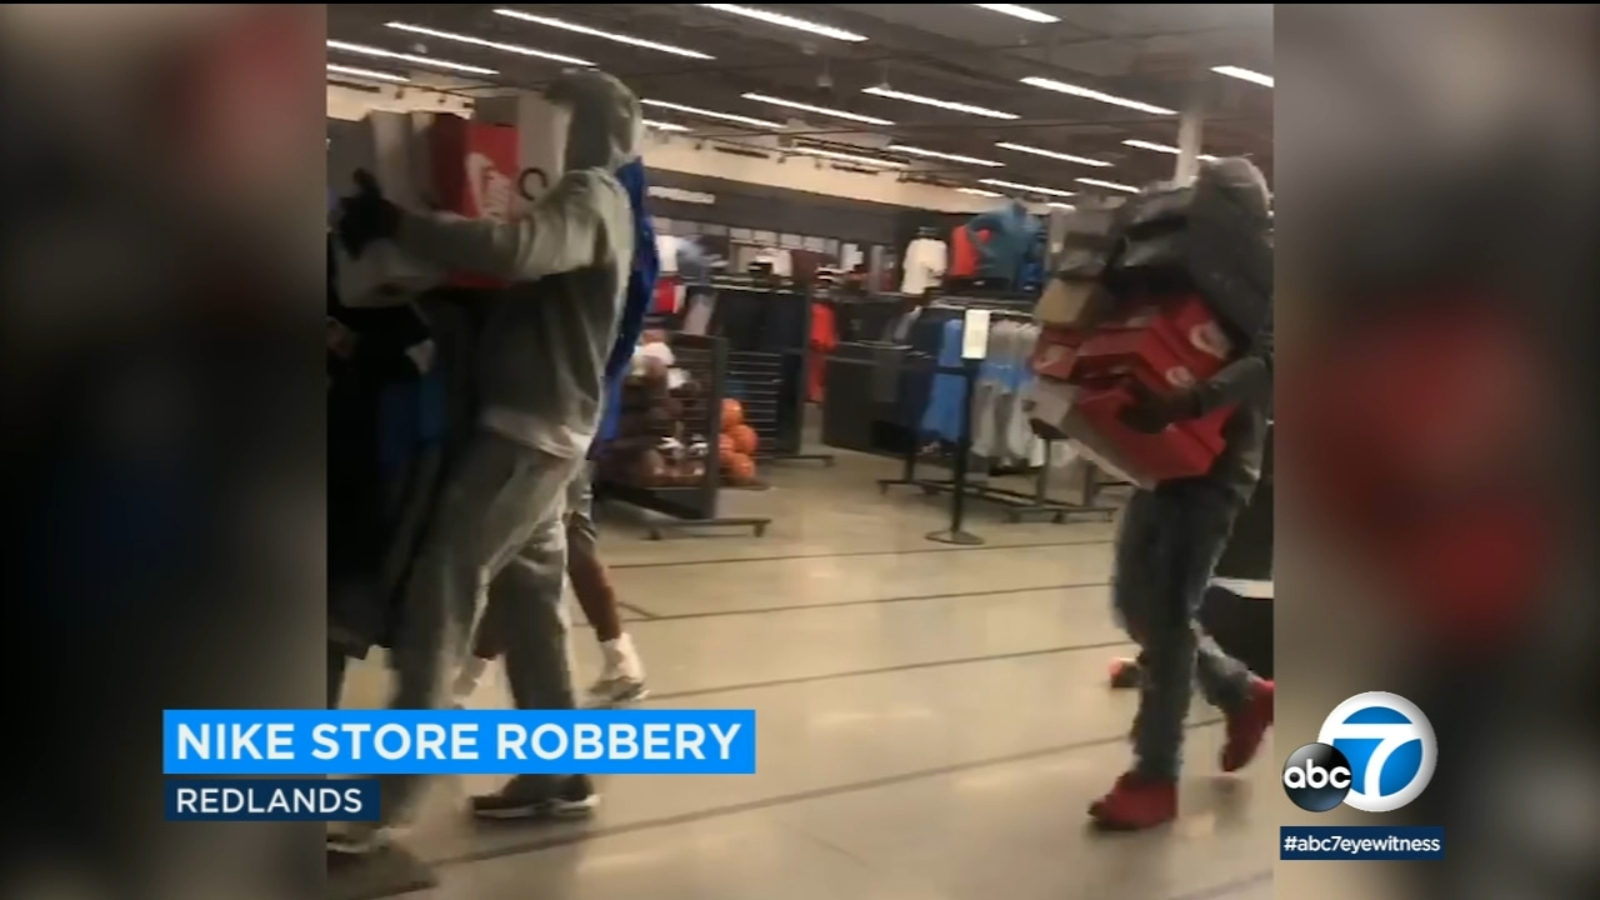 Salvación promoción Punto de exclamación  Suspects captured on video robbing Nike store in Redlands - ABC7 Los Angeles